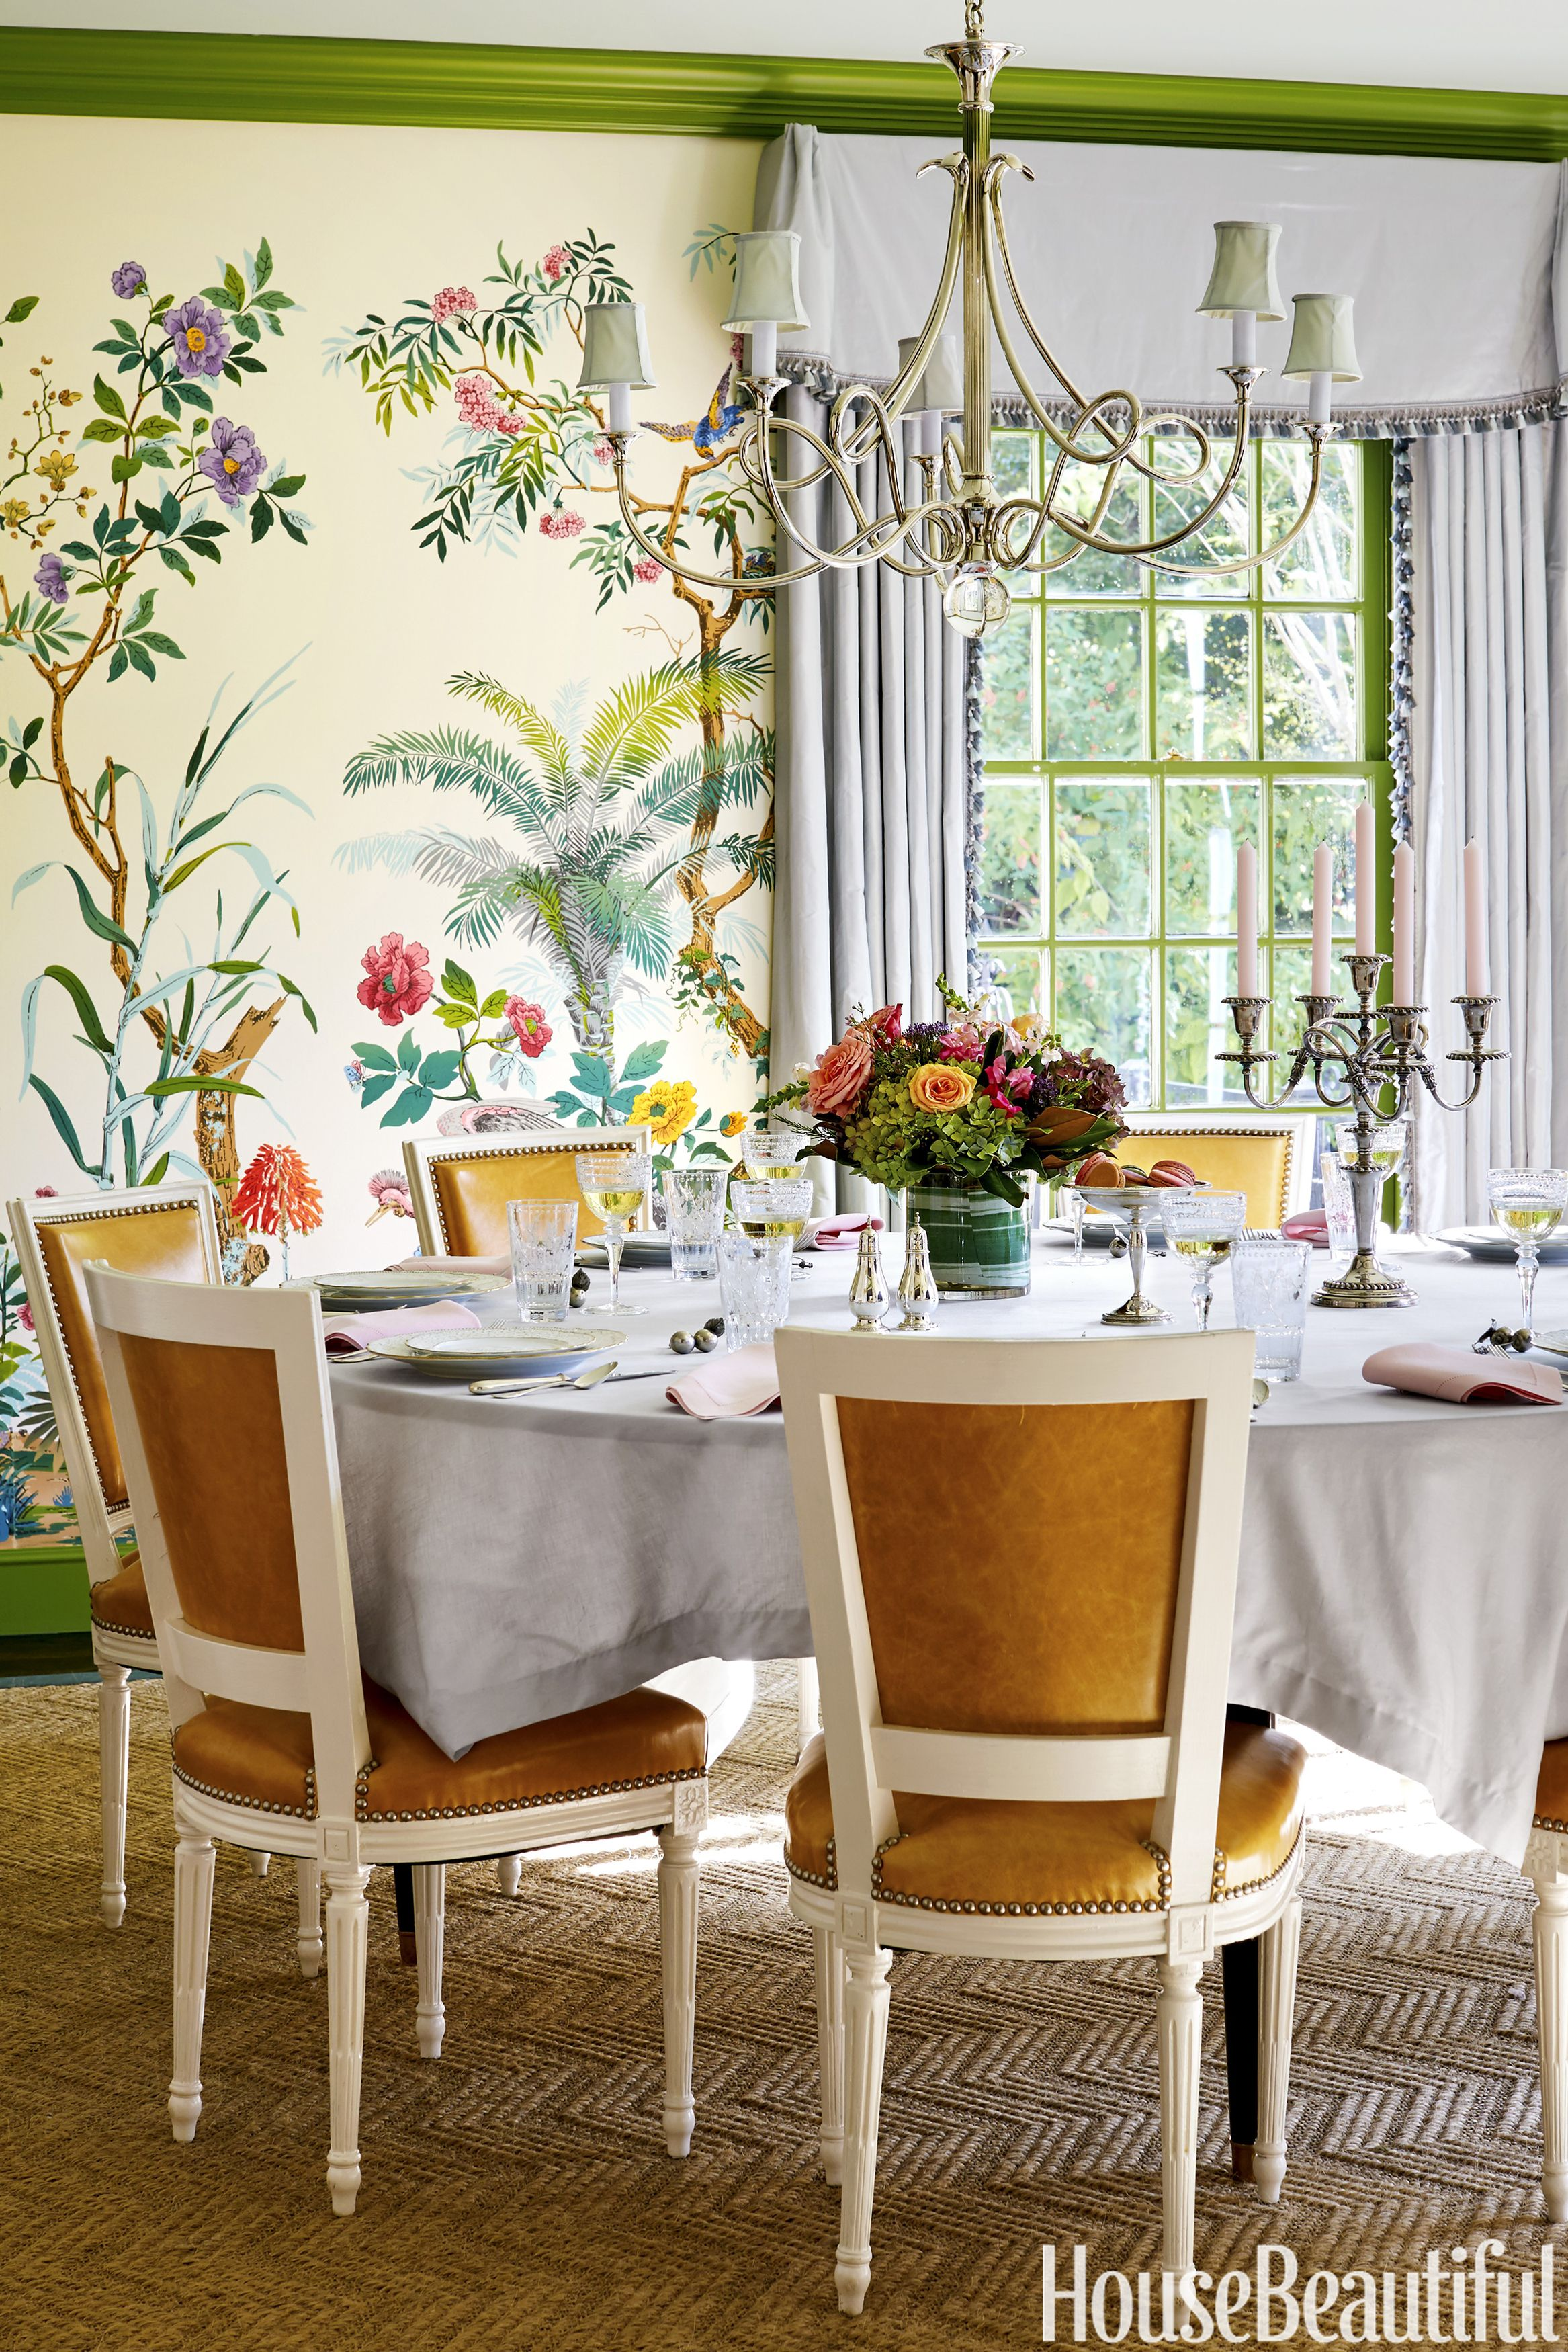 The Dining Room Now Bursts With High Octane Design, From The Zuber  Wallpaper To. House Beautiful